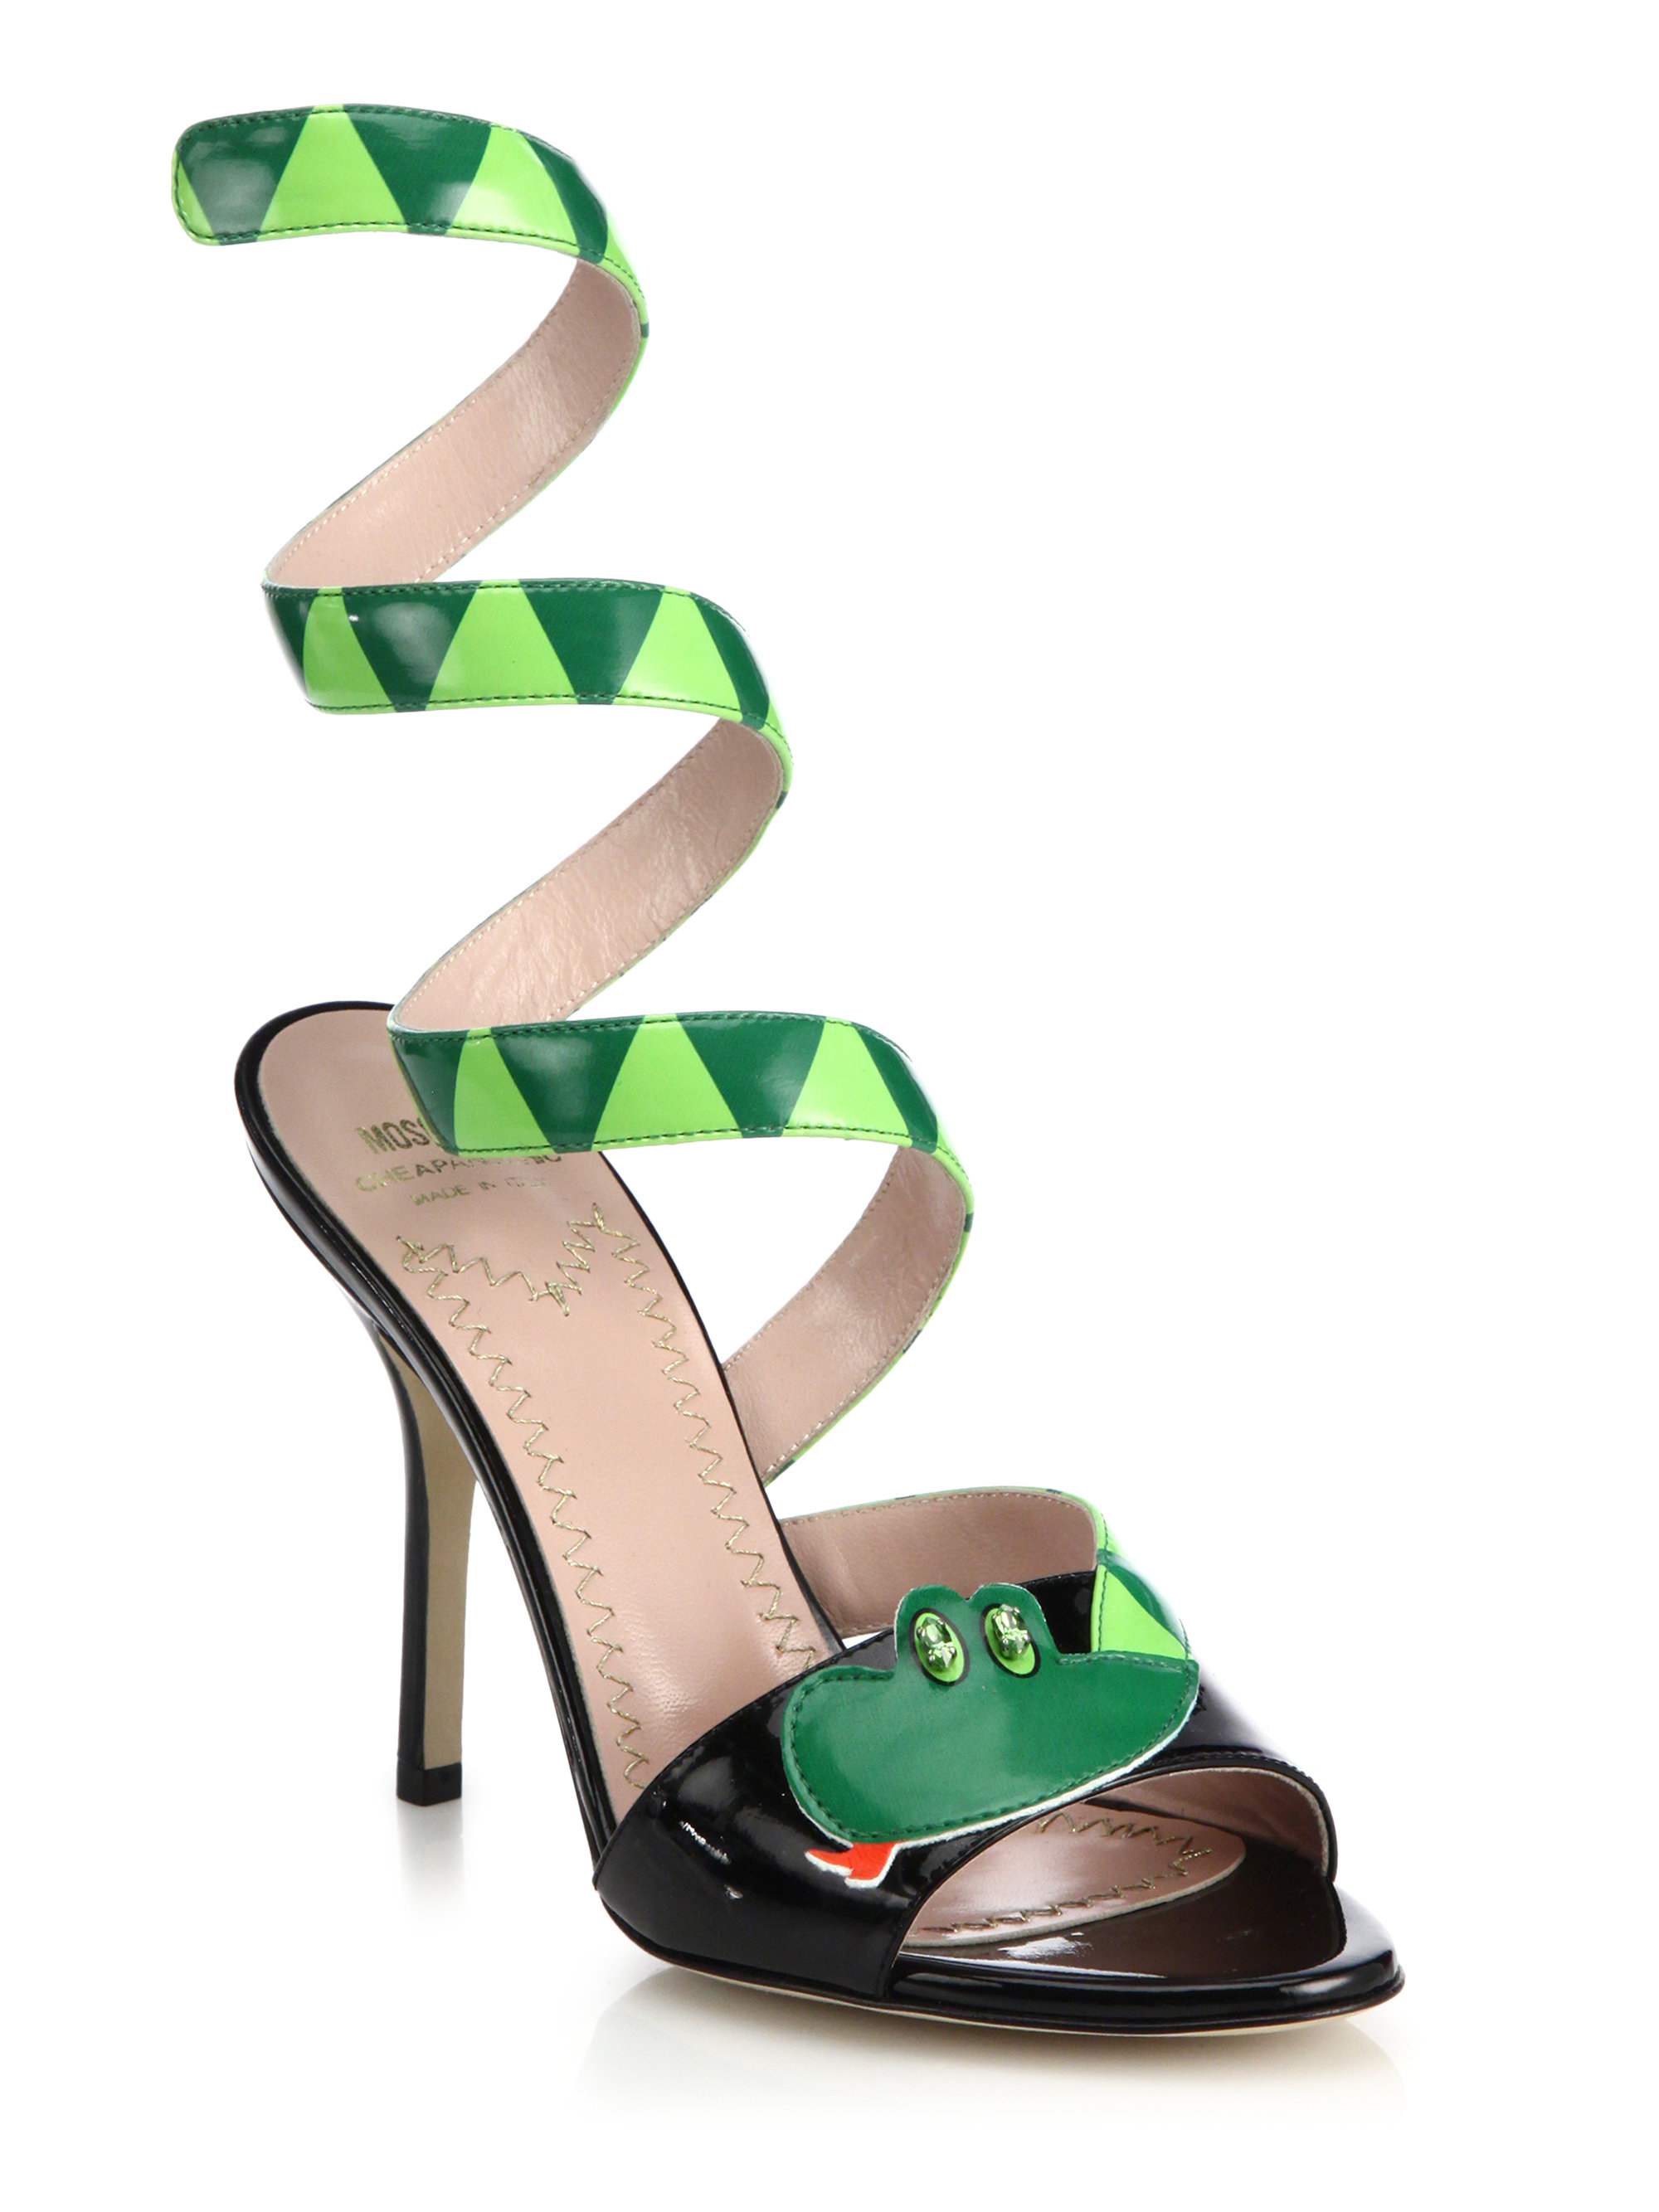 Moschino Patent Leather Sandal oN93wTtMRE